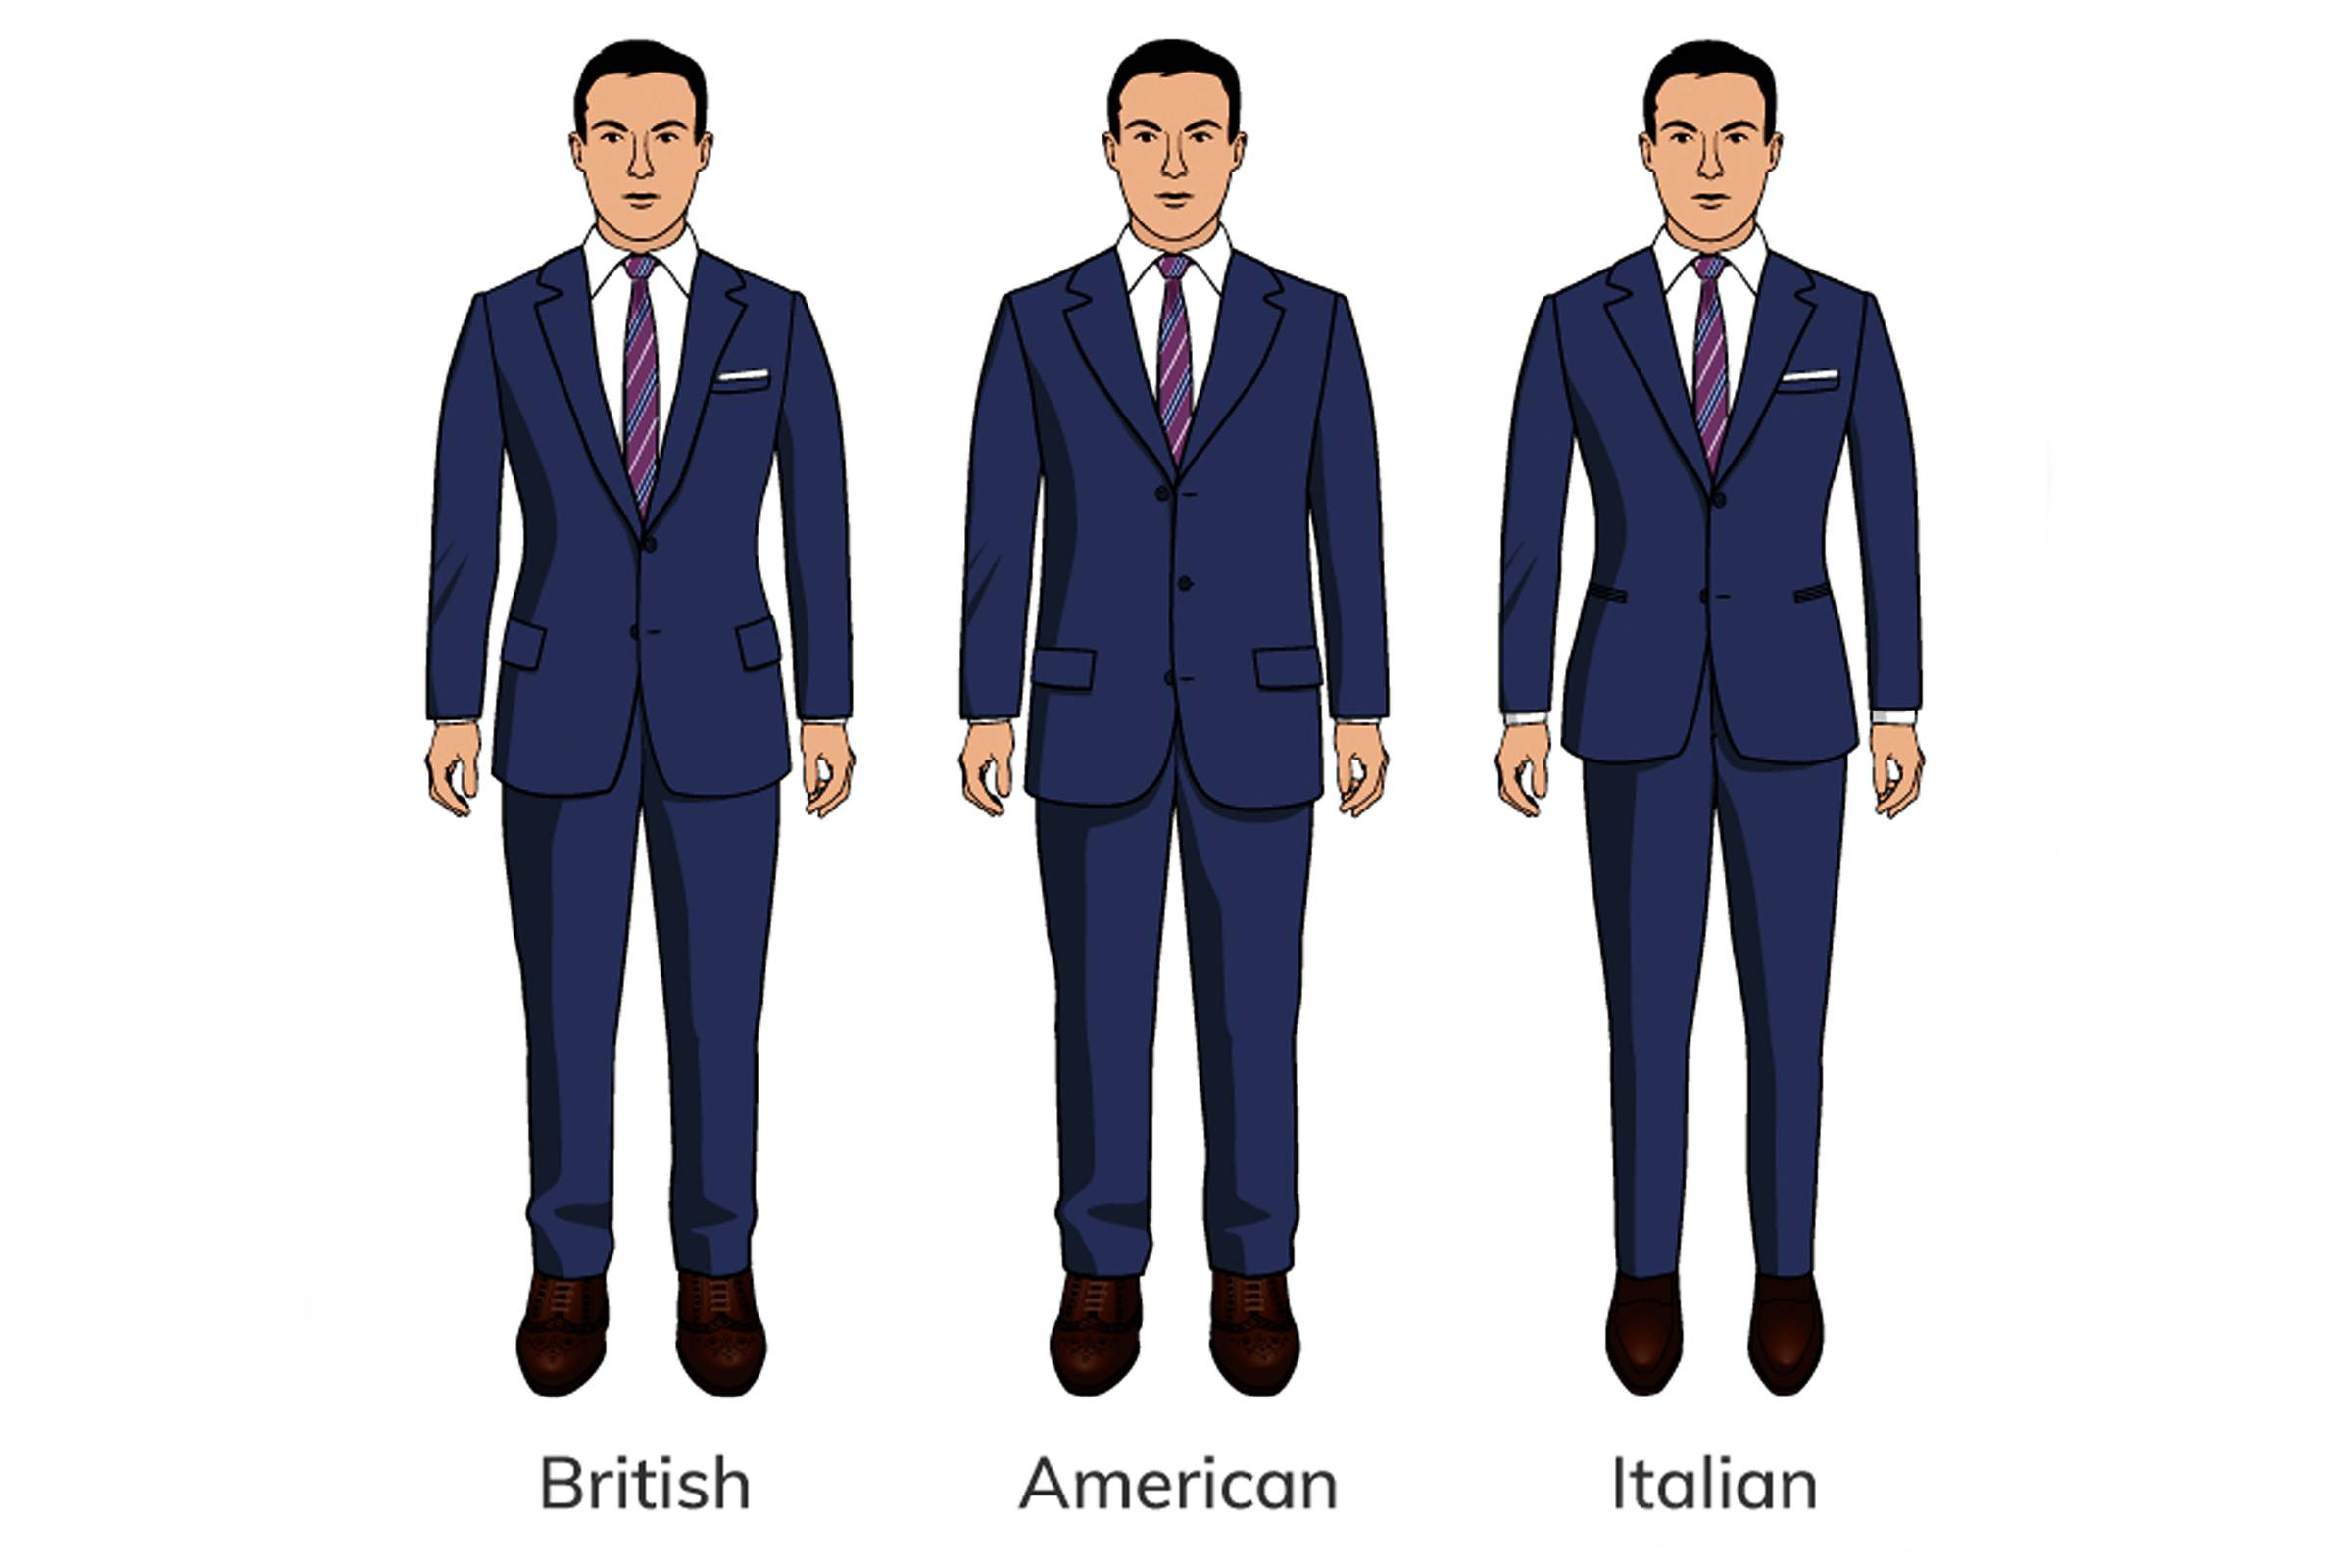 The International Styles of Suiting